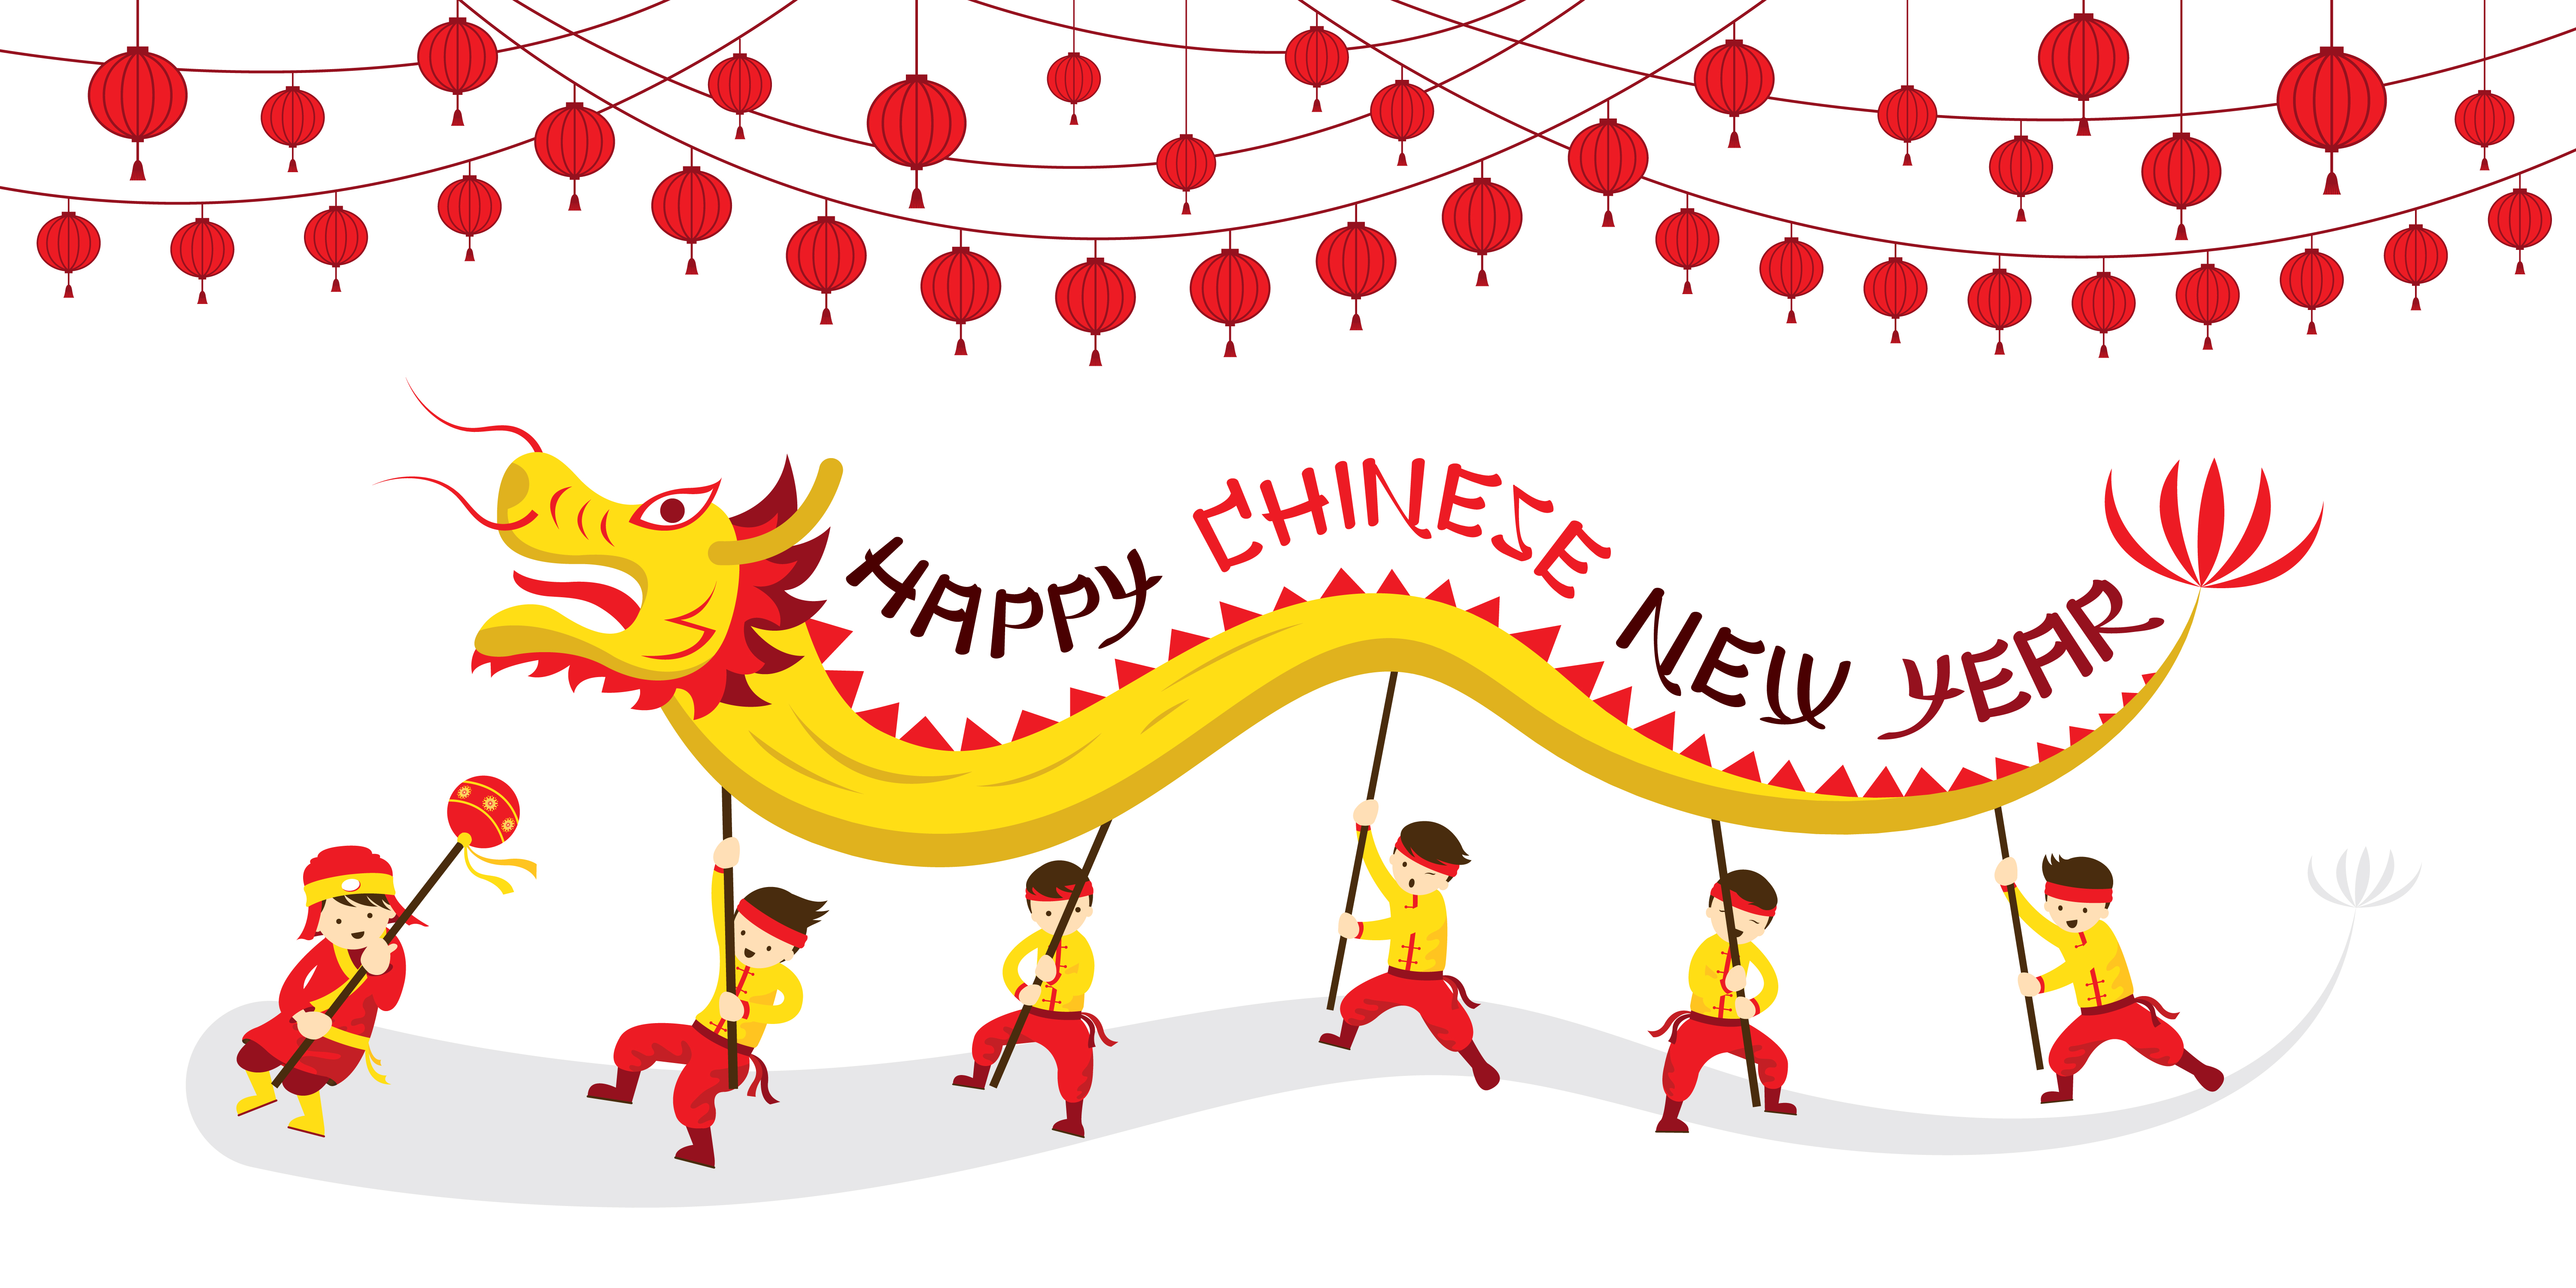 chinese new year fun facts Here are 21 amazing chinese new year facts 1-5 chinese new year facts image credit: arnoldbolingbrokecomau 1 the largest human migration in the world, chunyun, occurs annually around chinese new year when everyone returns home to.